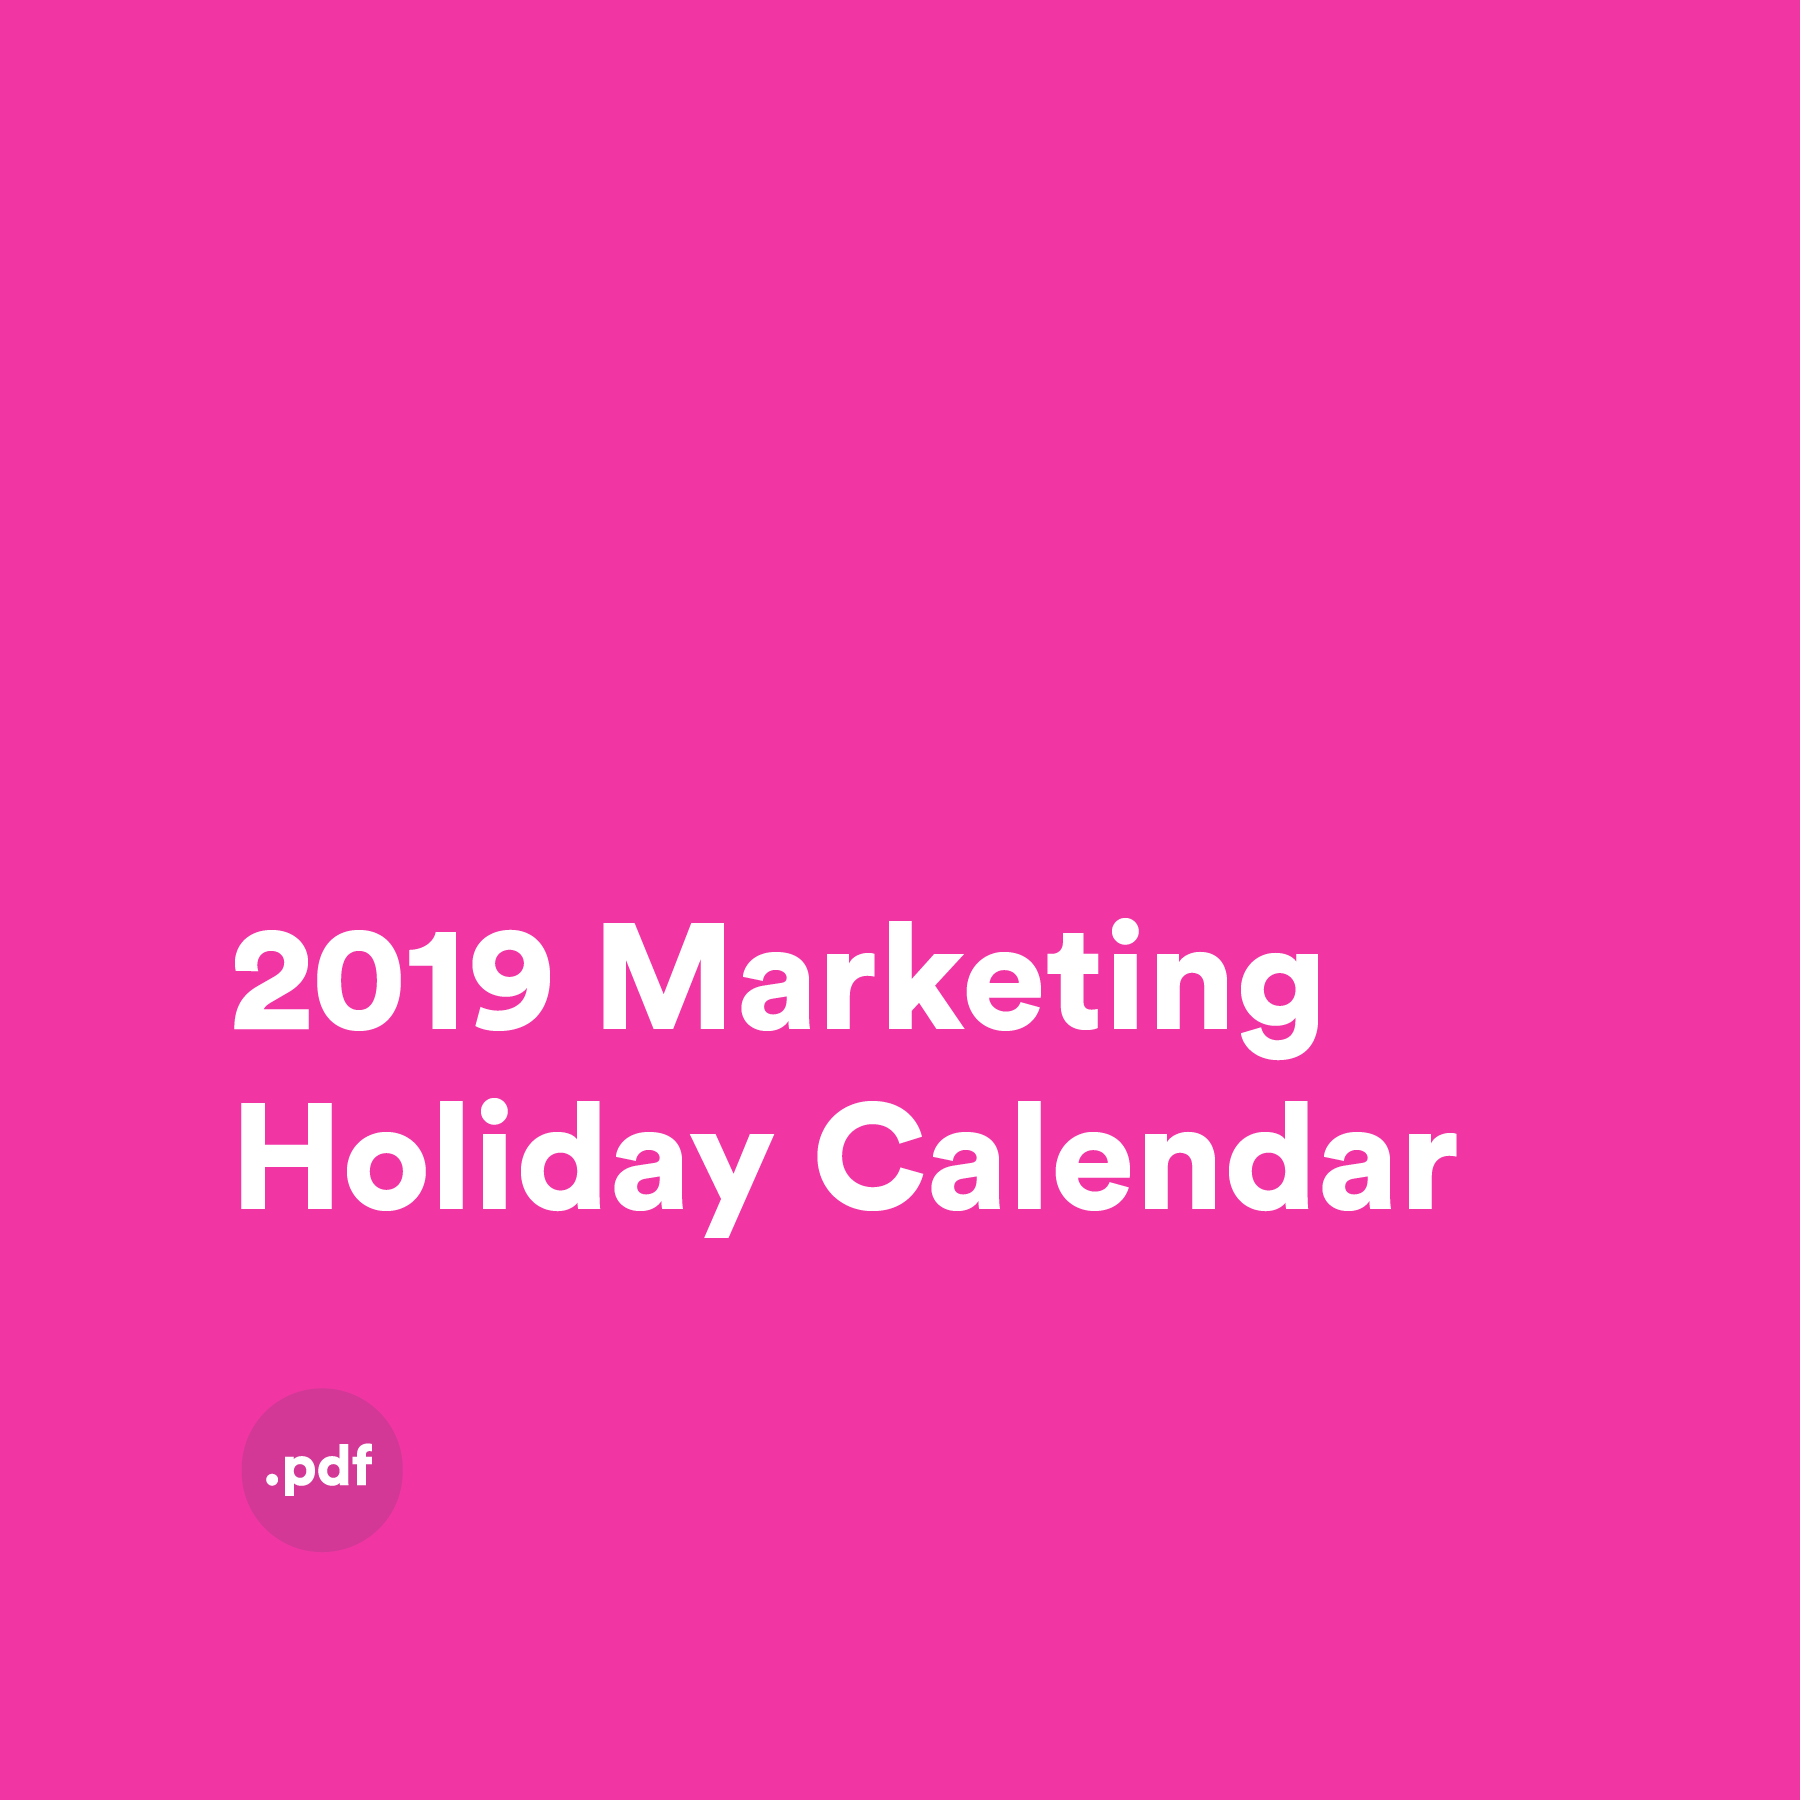 2019 Marketing Holiday Calendar